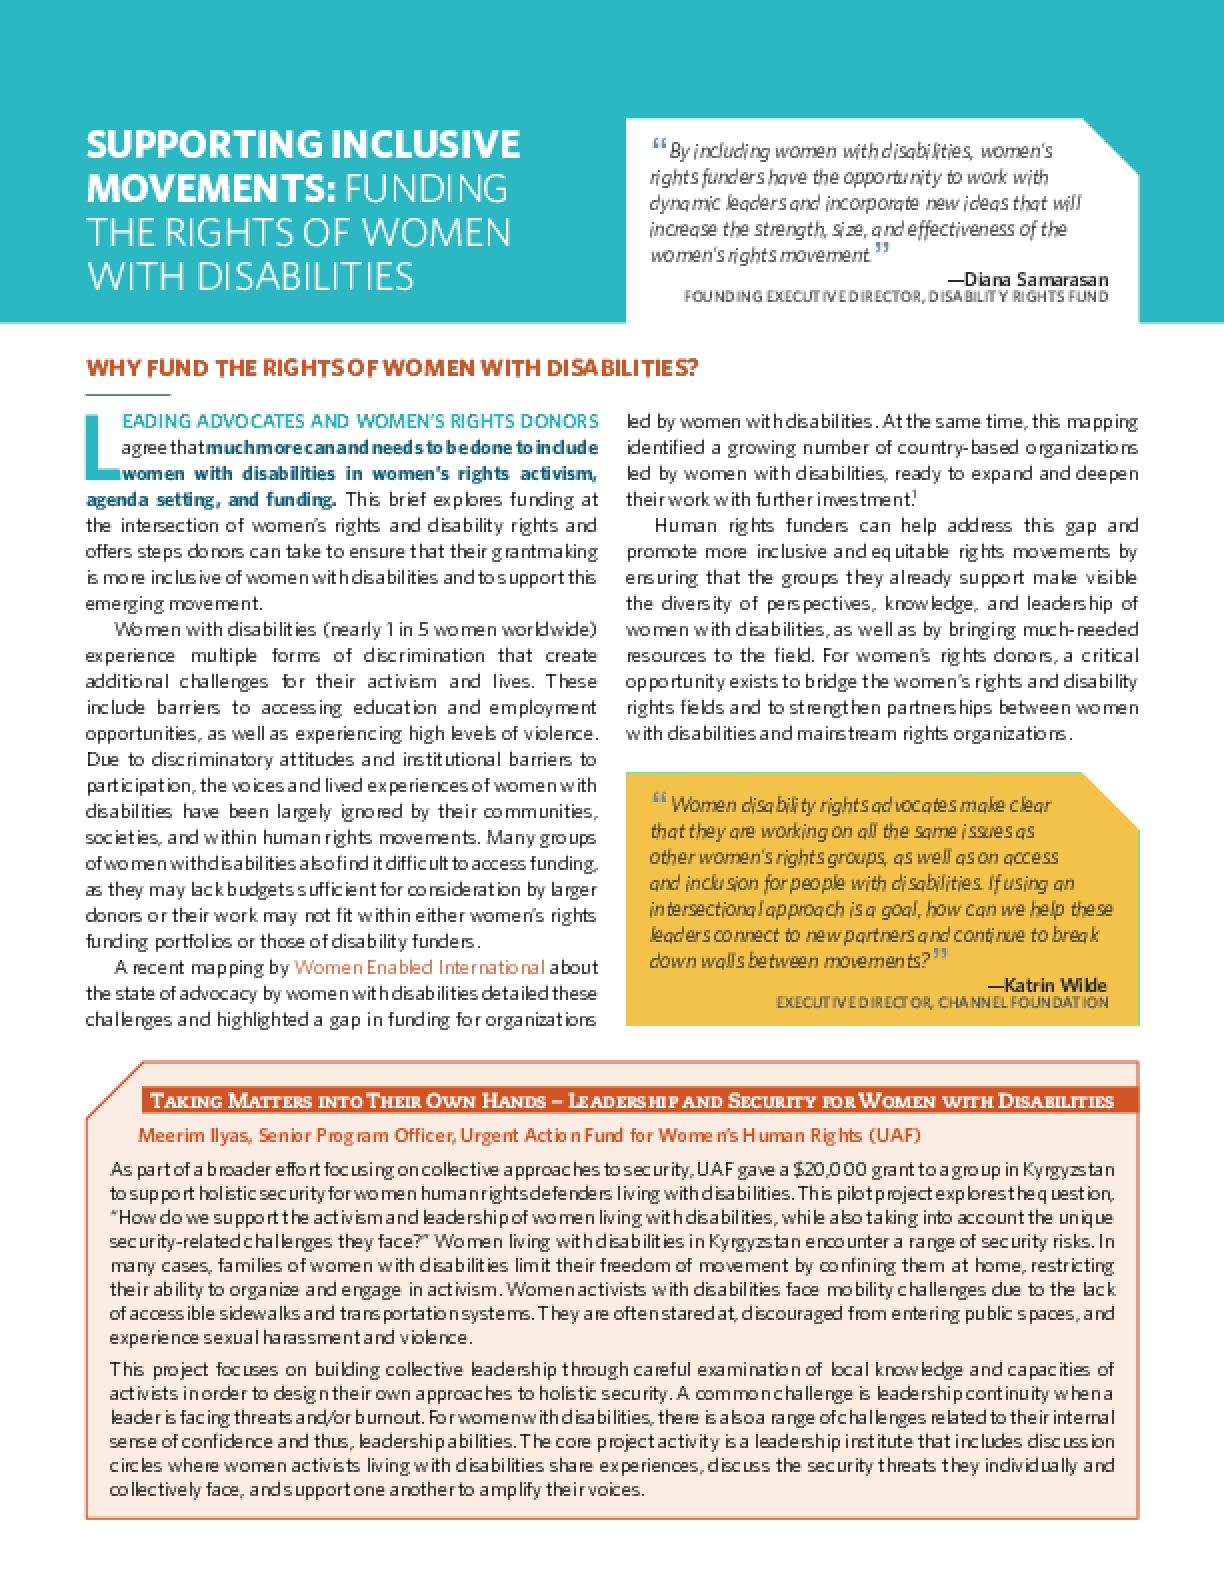 Supporting Inclusive Movements: Funding the Rights of Women with Disabilities